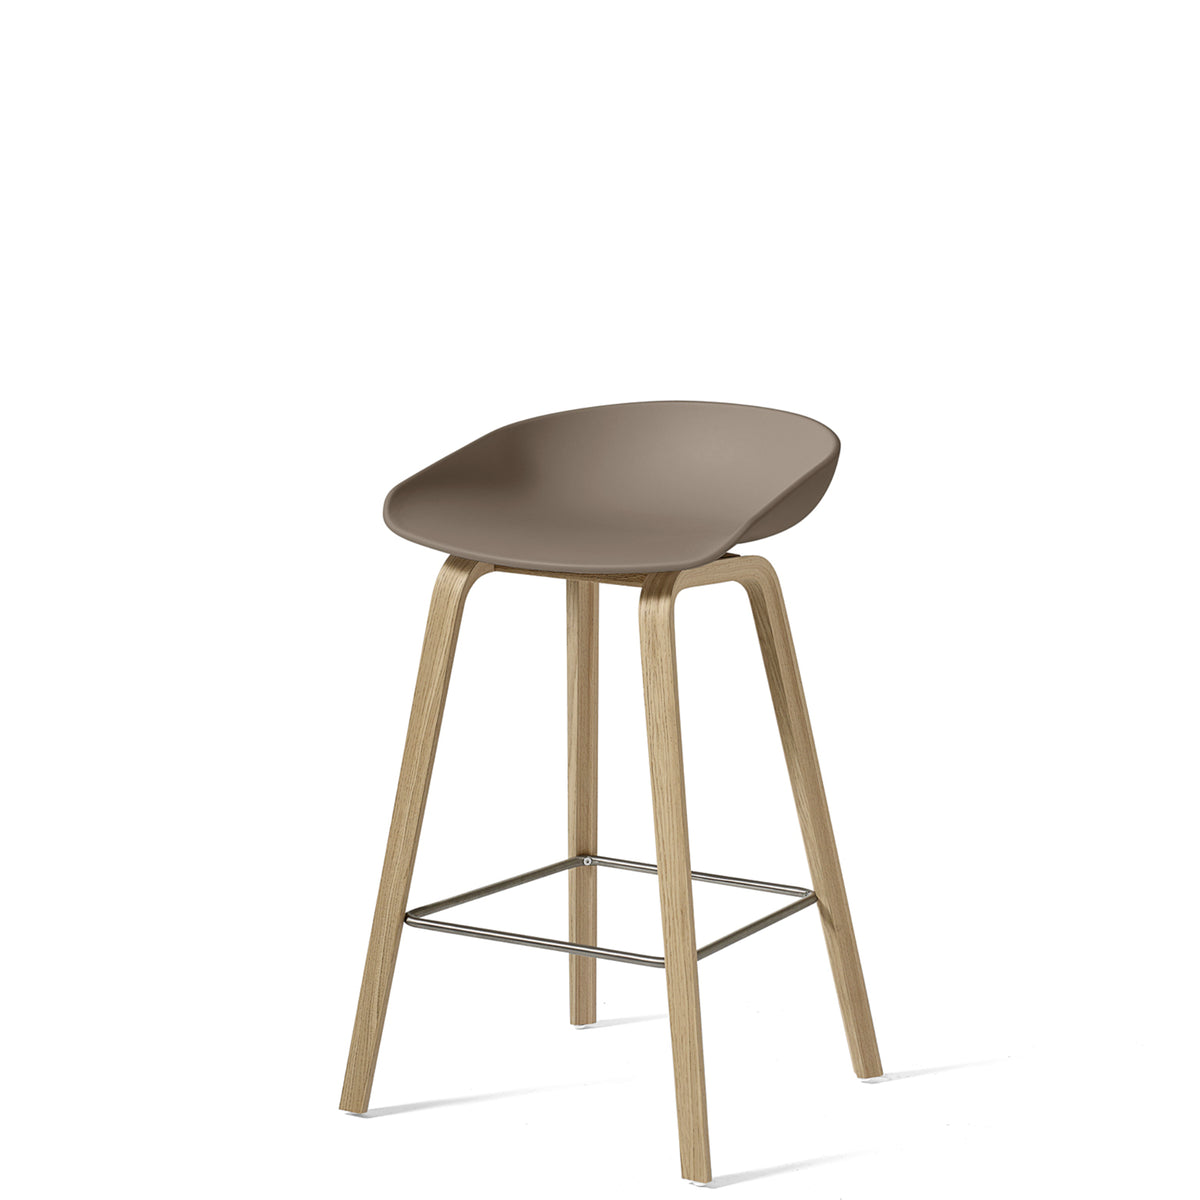 HAY About A Stool AAS32 750mm Khaki with Matt Lacquered Oak Base